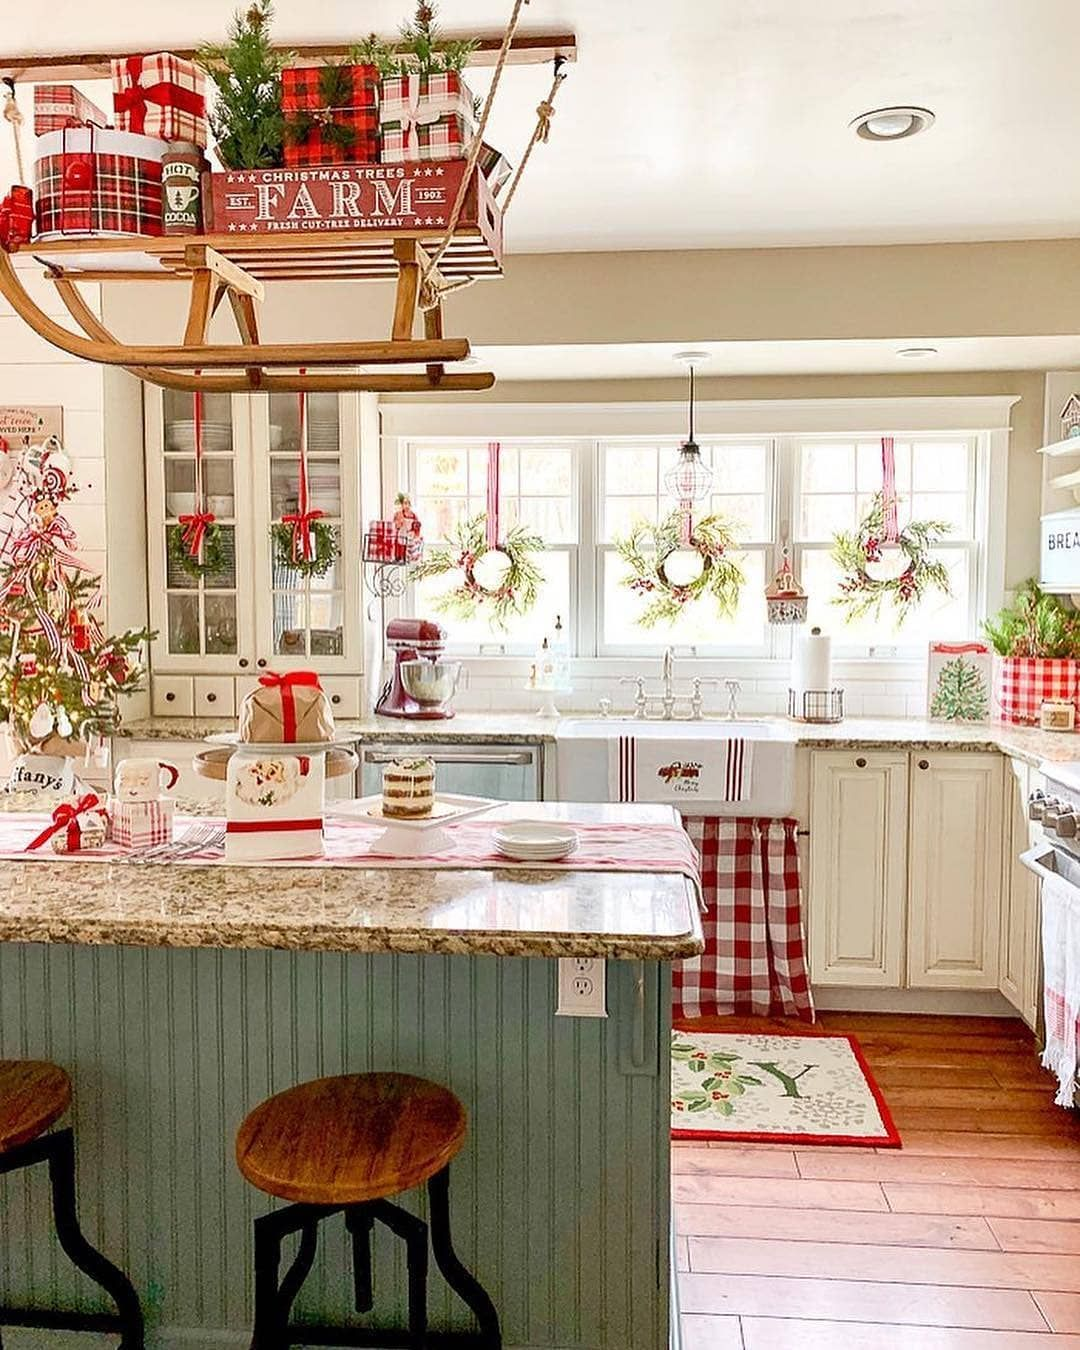 farmhouse goals on instagram we are in love with this cute farmhouse kitchen what do you on farmhouse kitchen xmas id=84667